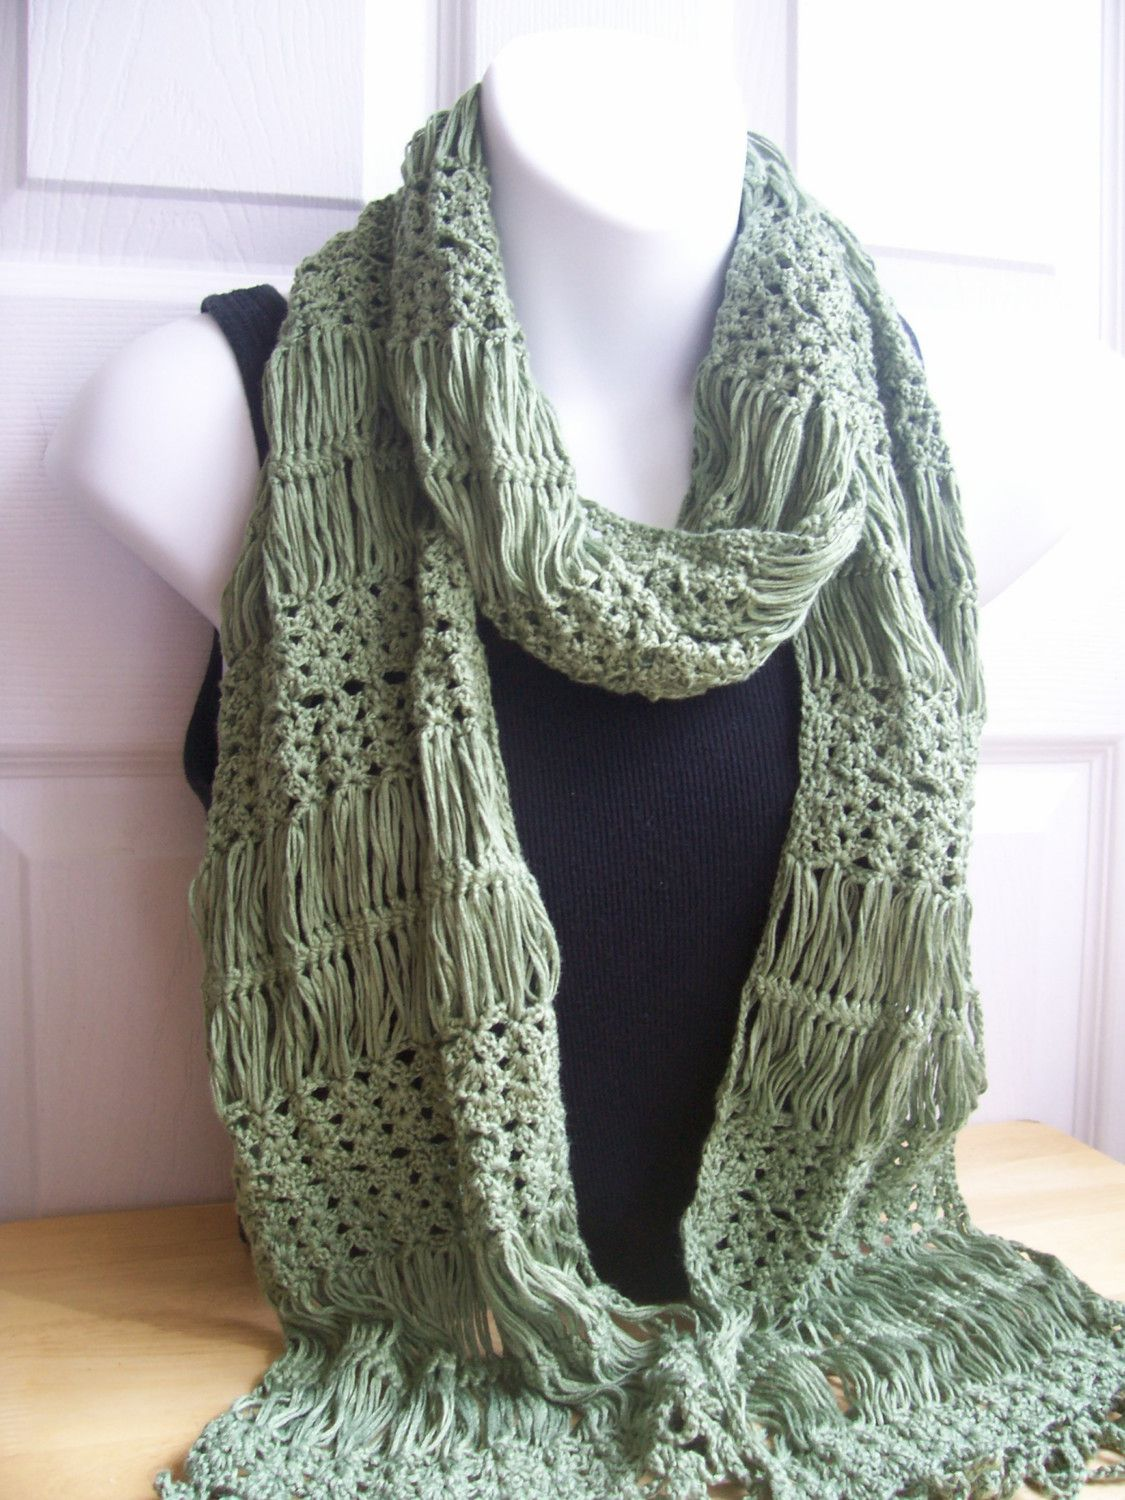 Hairpin lace scarf yarn crafts pinterest scarves crochet hairpin crochet pattern hairpin lace scarf bankloansurffo Image collections